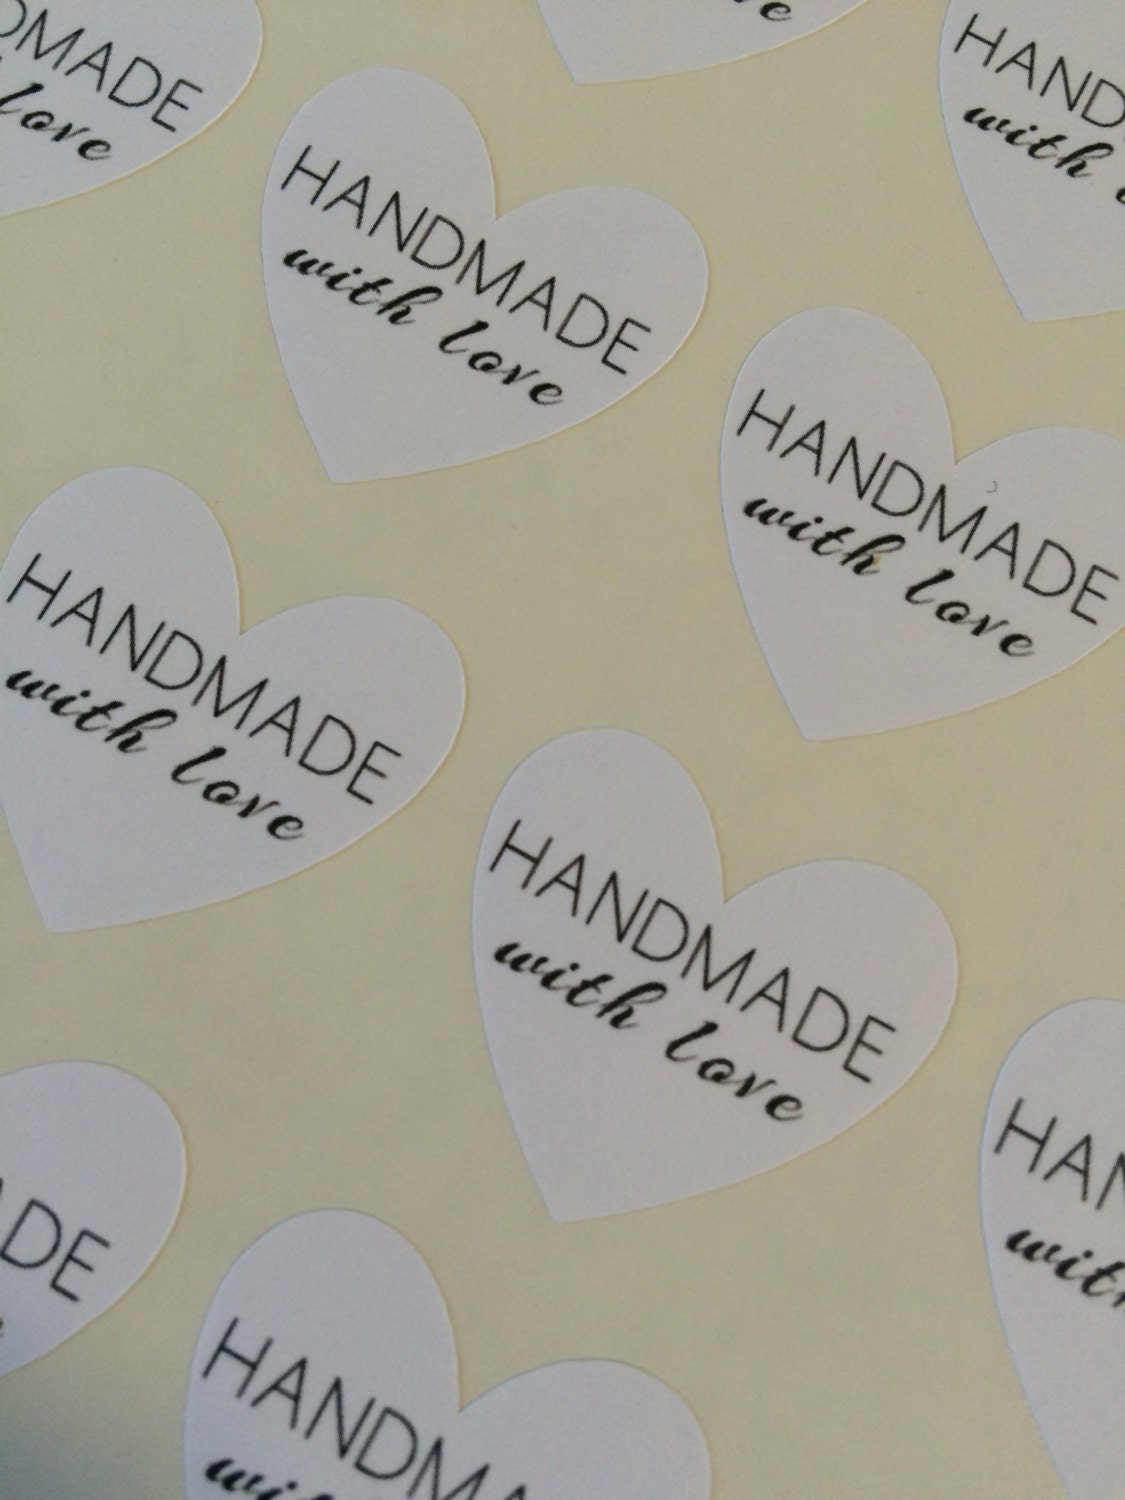 Handmade With Love Heart Stickers Set of 35 from ...